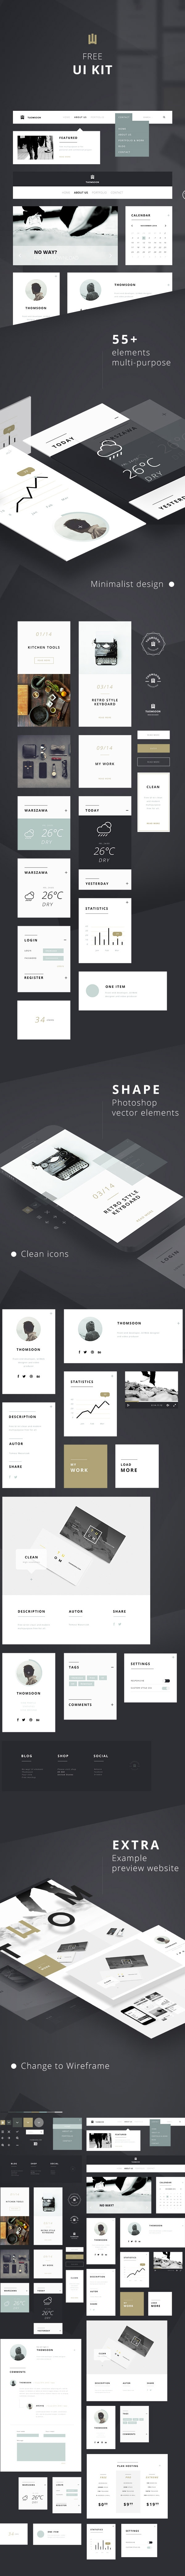 55+ free UI elements – PSD